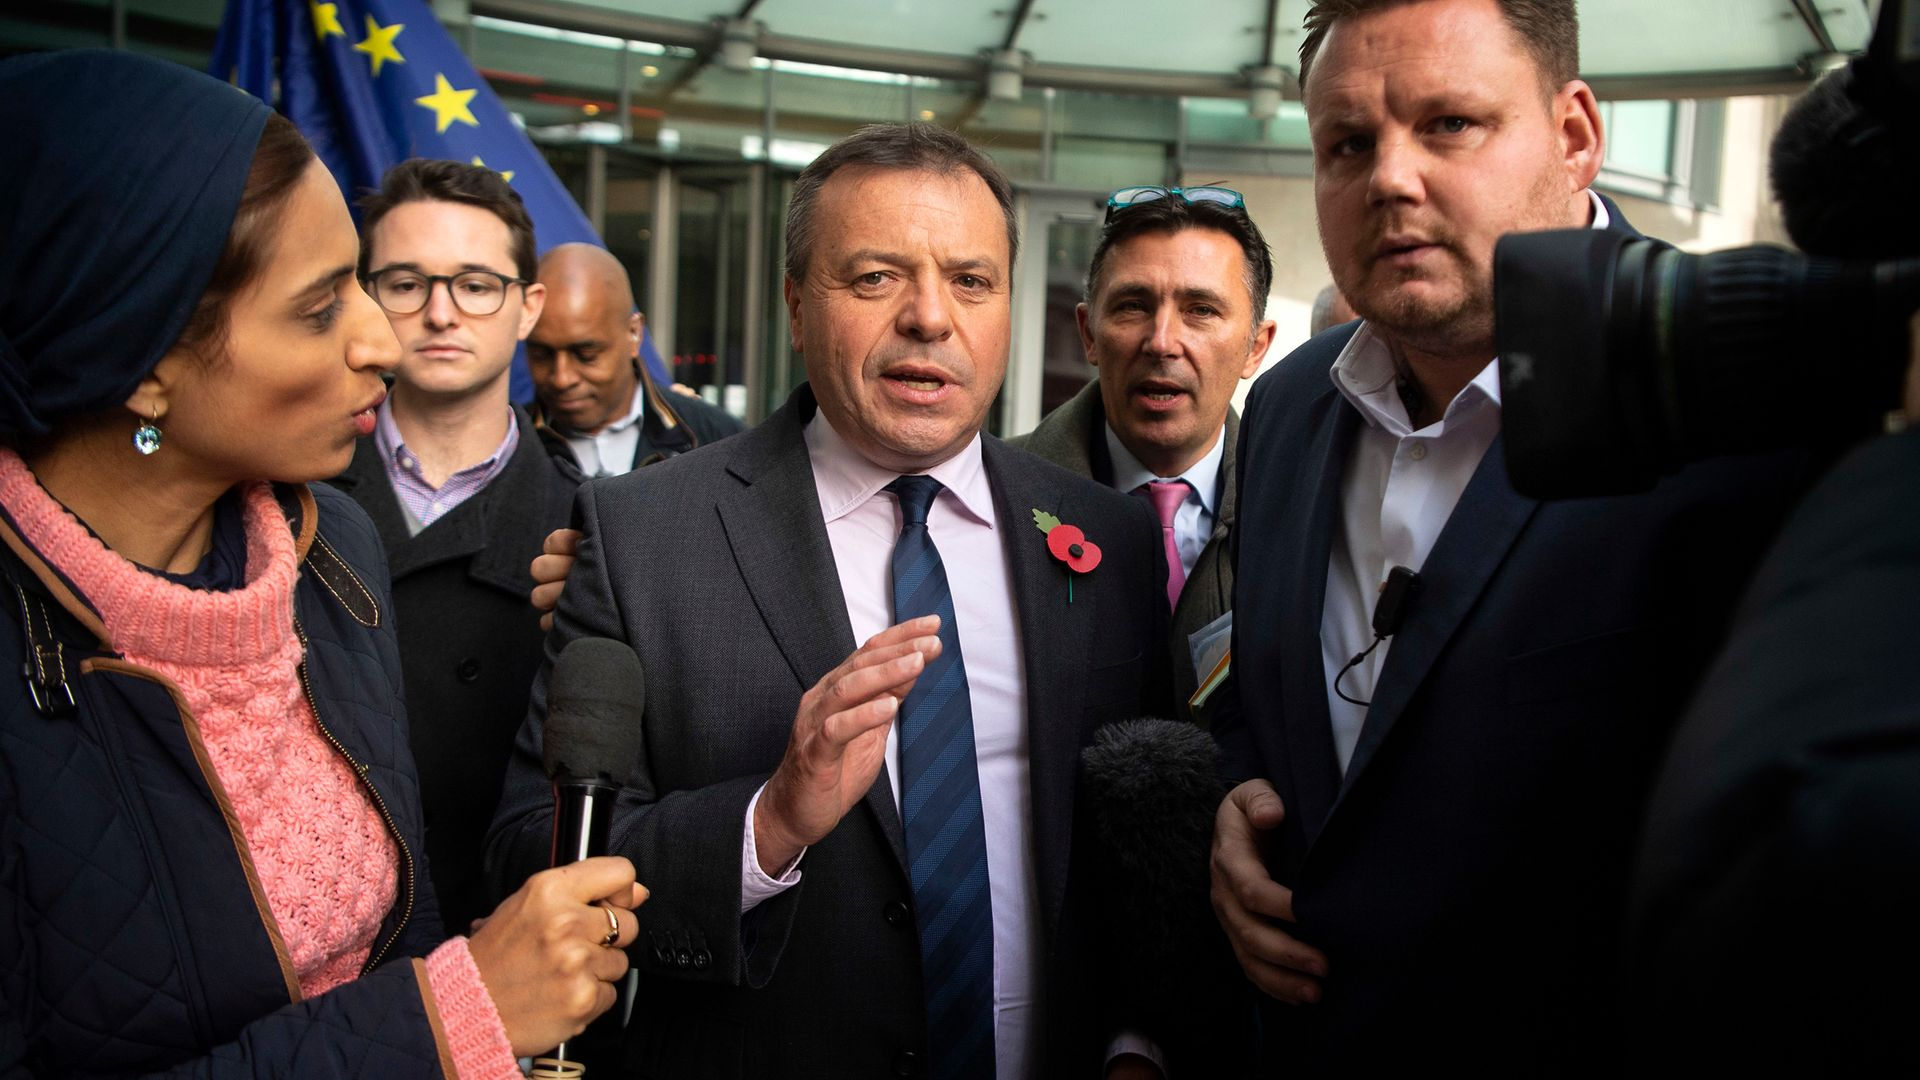 Leave campaigner Arron Banks (centre) claims he's being discriminated against for his political views - Credit: PA